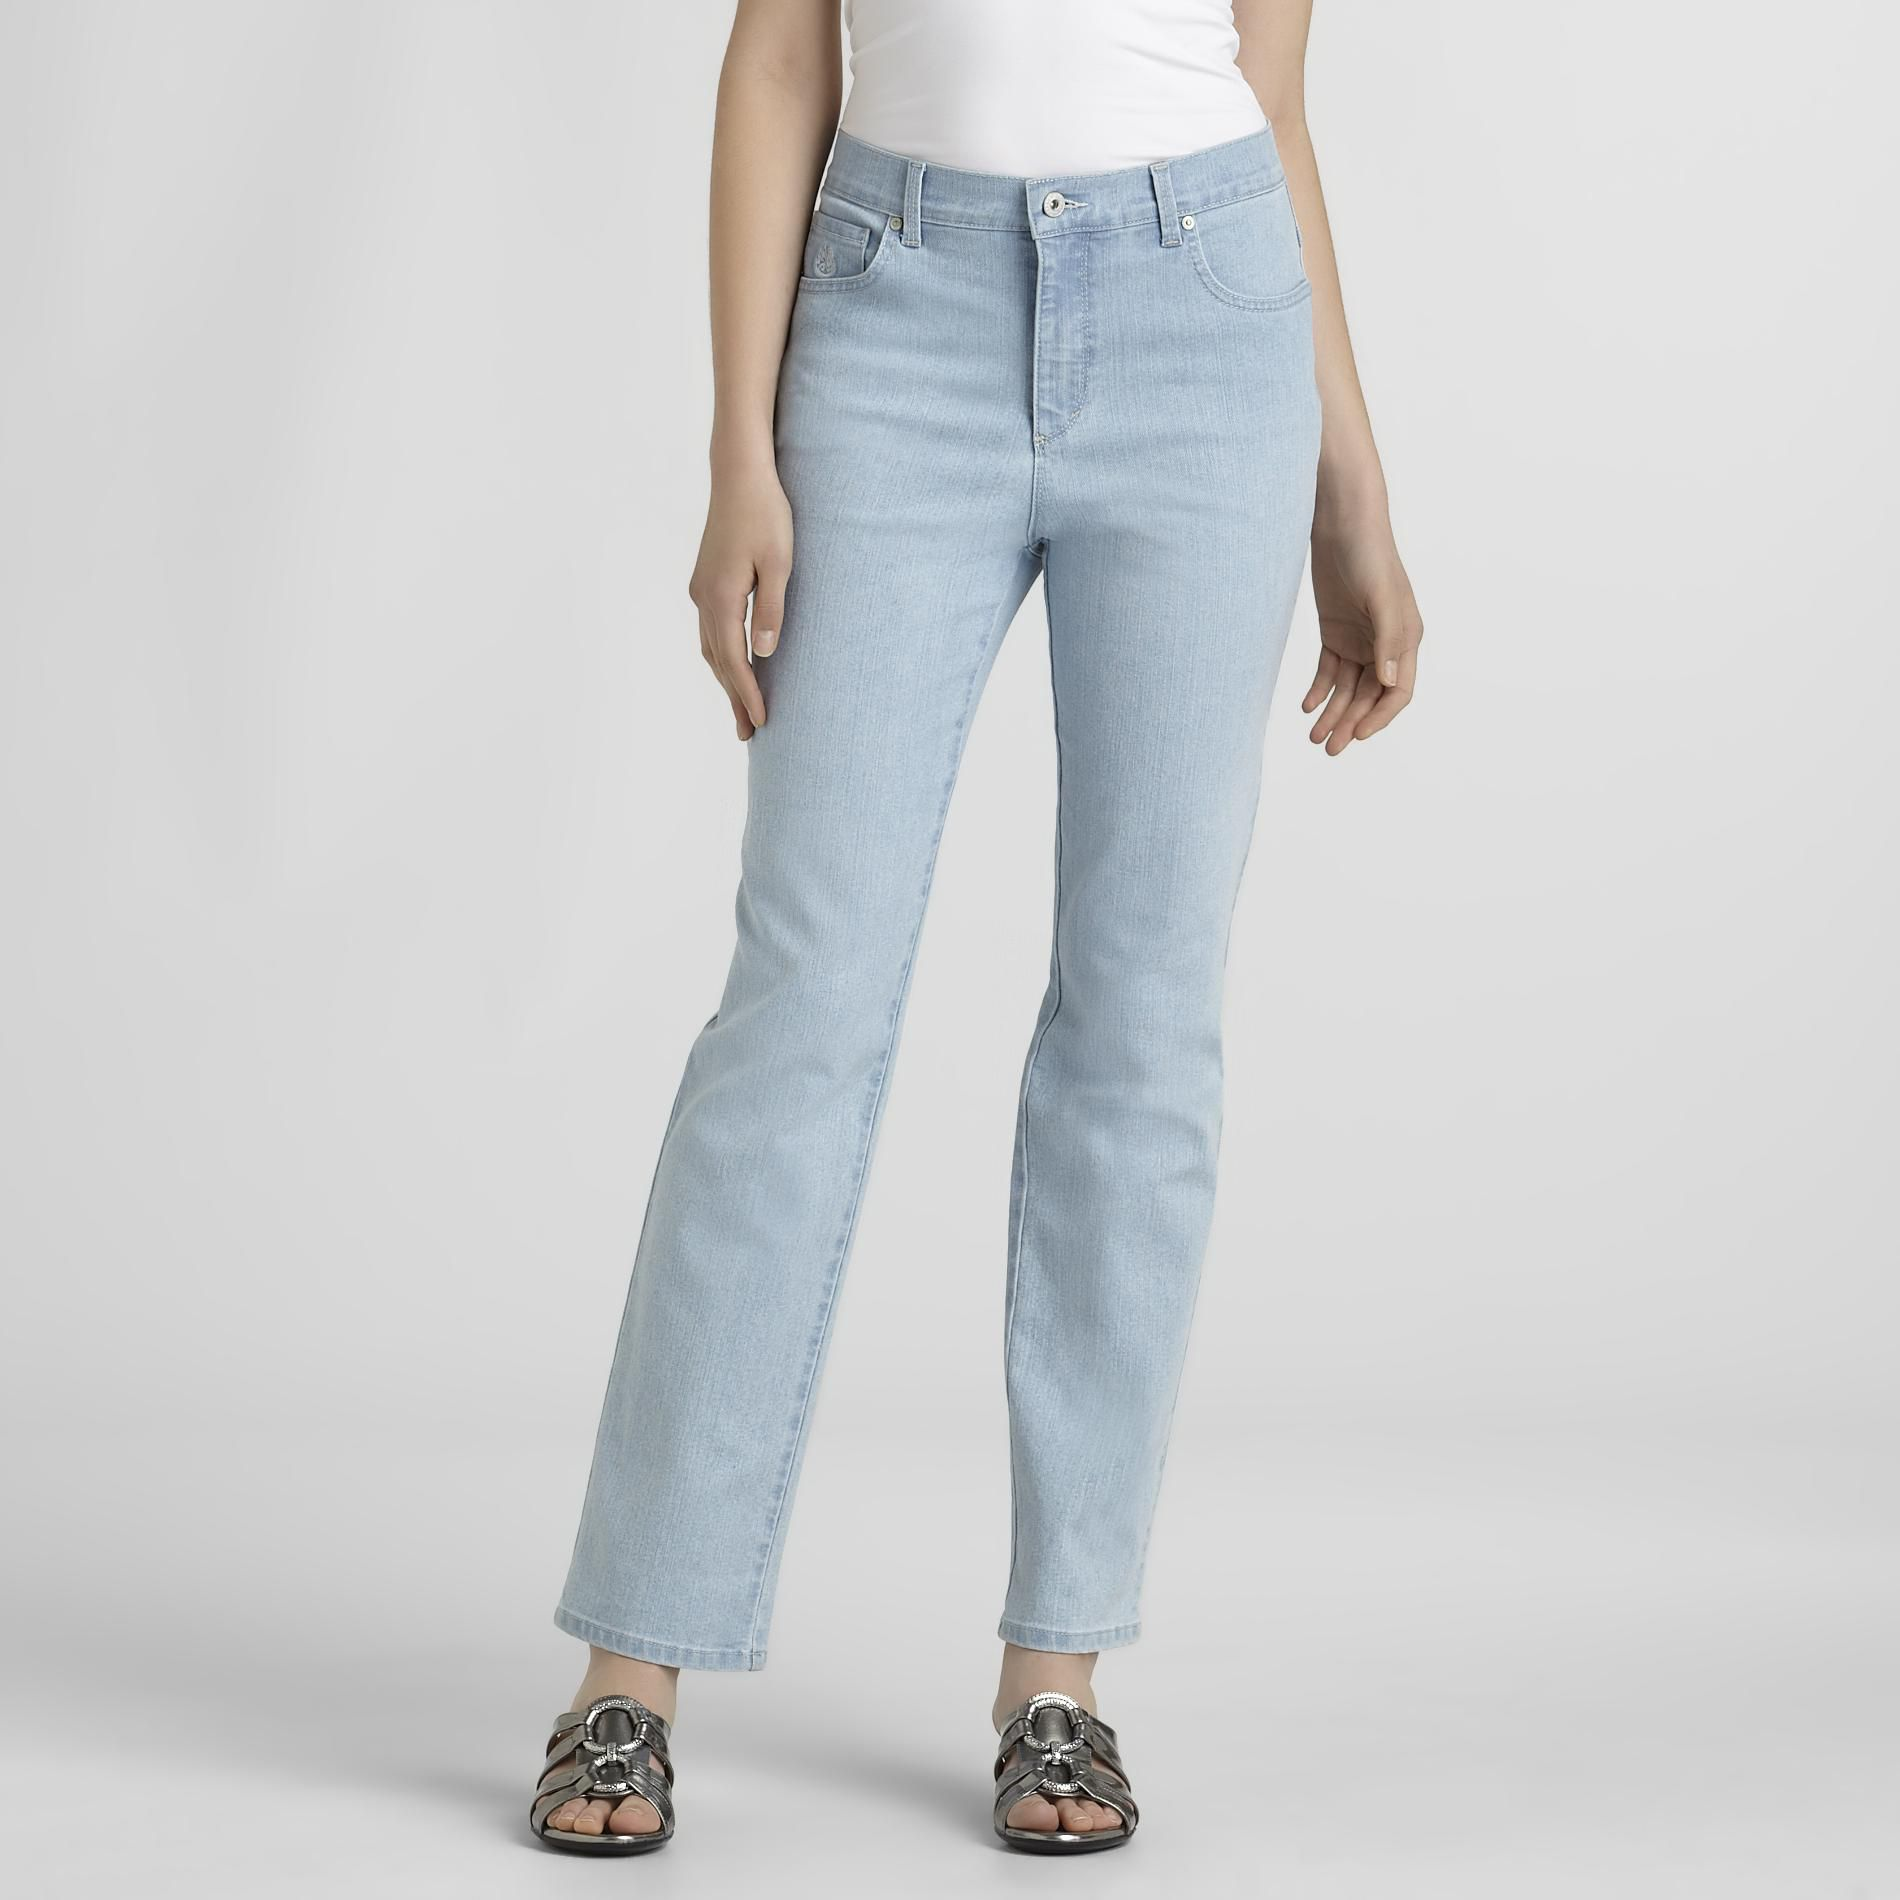 Gloria Vanderbilt Women's Amanda Jeans at Sears.com